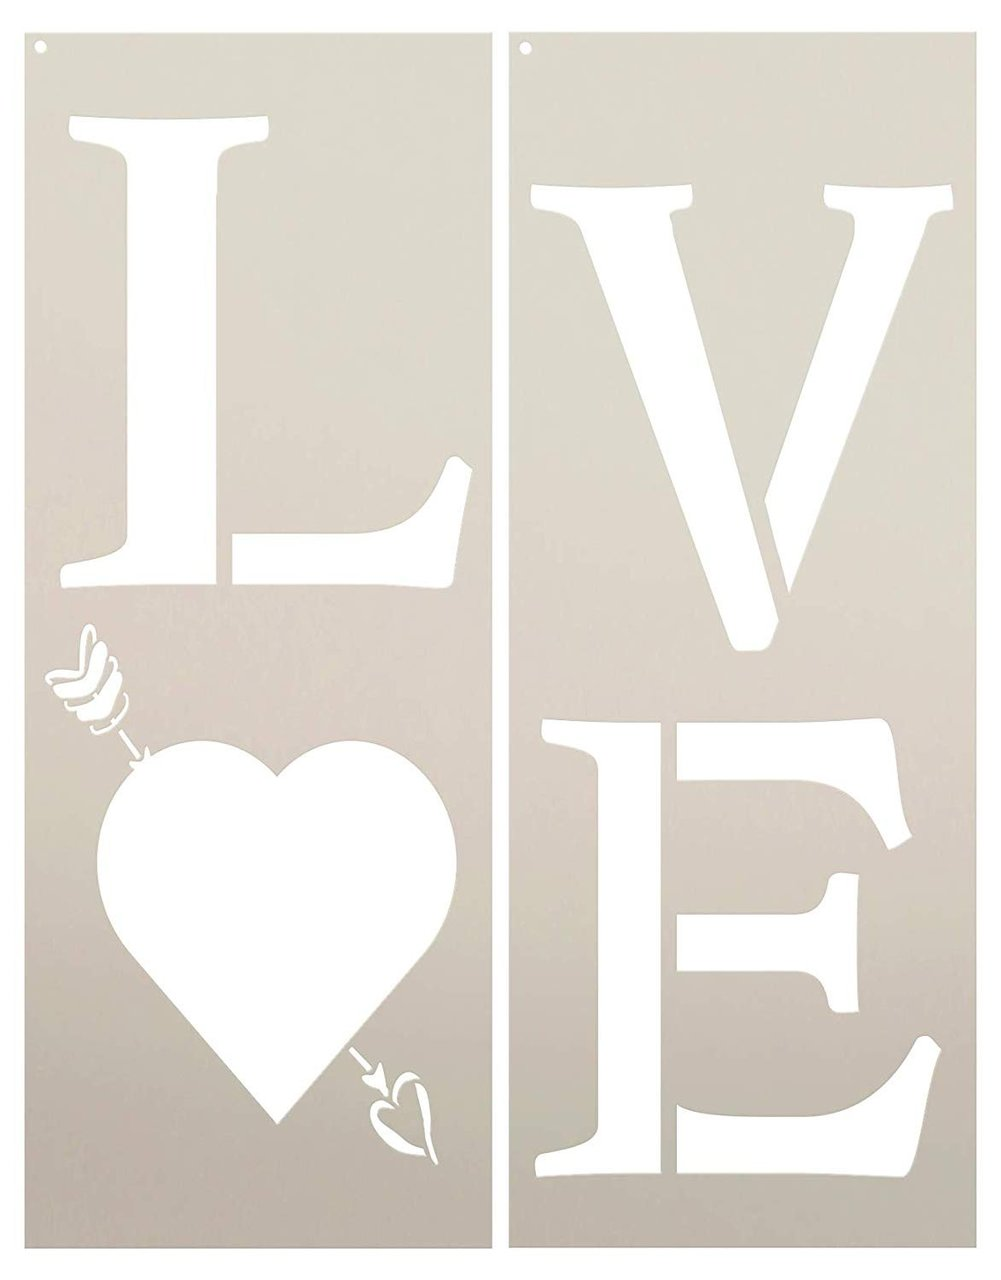 Love Heart & Arrow Tall Porch Stencil by StudioR12 | 2 Piece | DIY Large Vertical Home Decor for Valentine's Day | Front Entryway | Craft & Paint Wood Leaner Signs | Reusable Mylar Template | Size 4ft